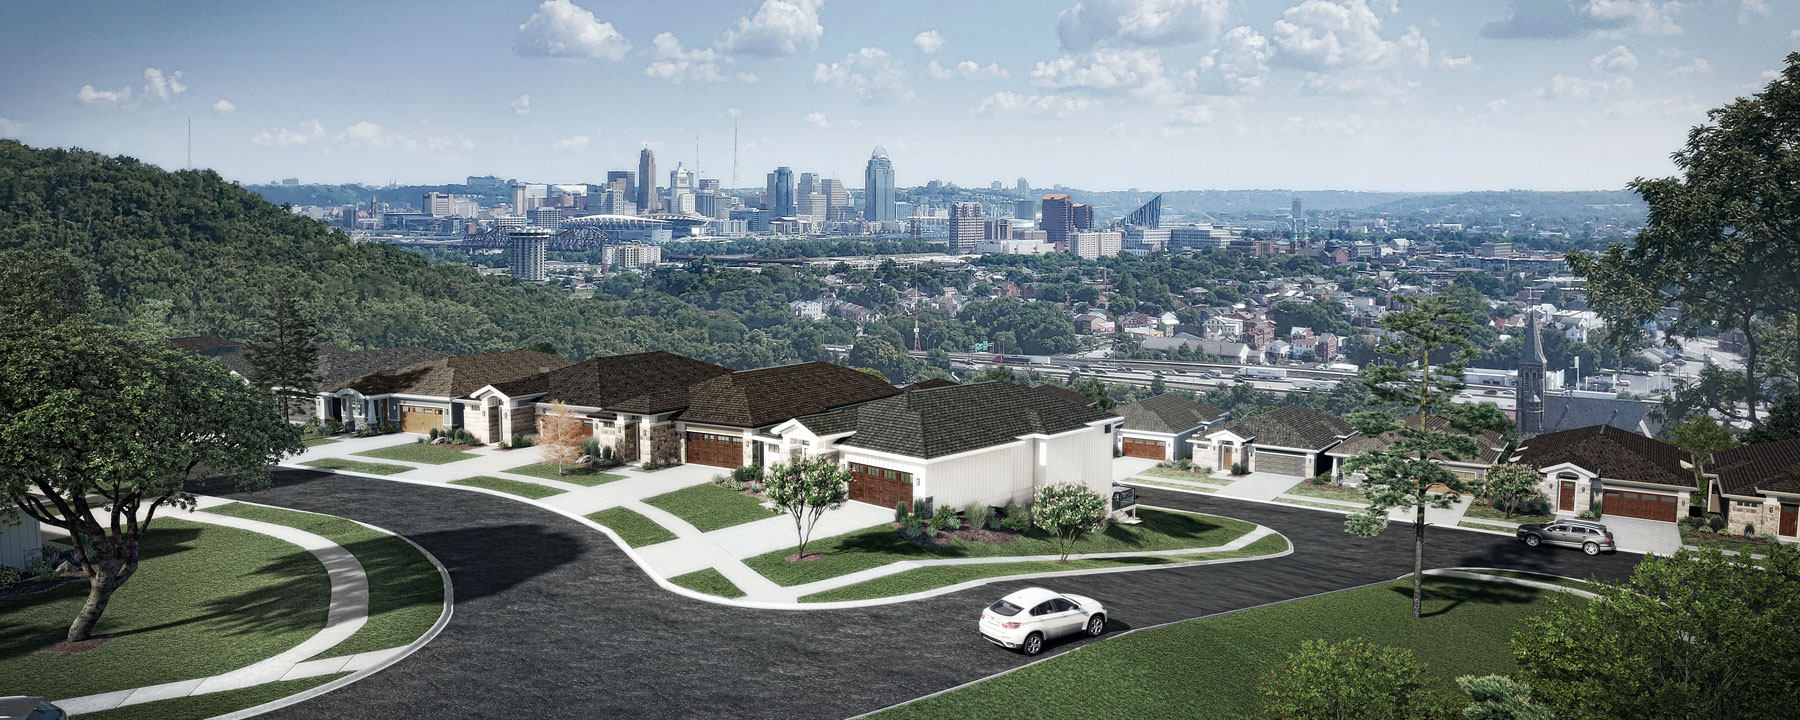 C|C has designed housing for a development with great views of downtown Cincinnati